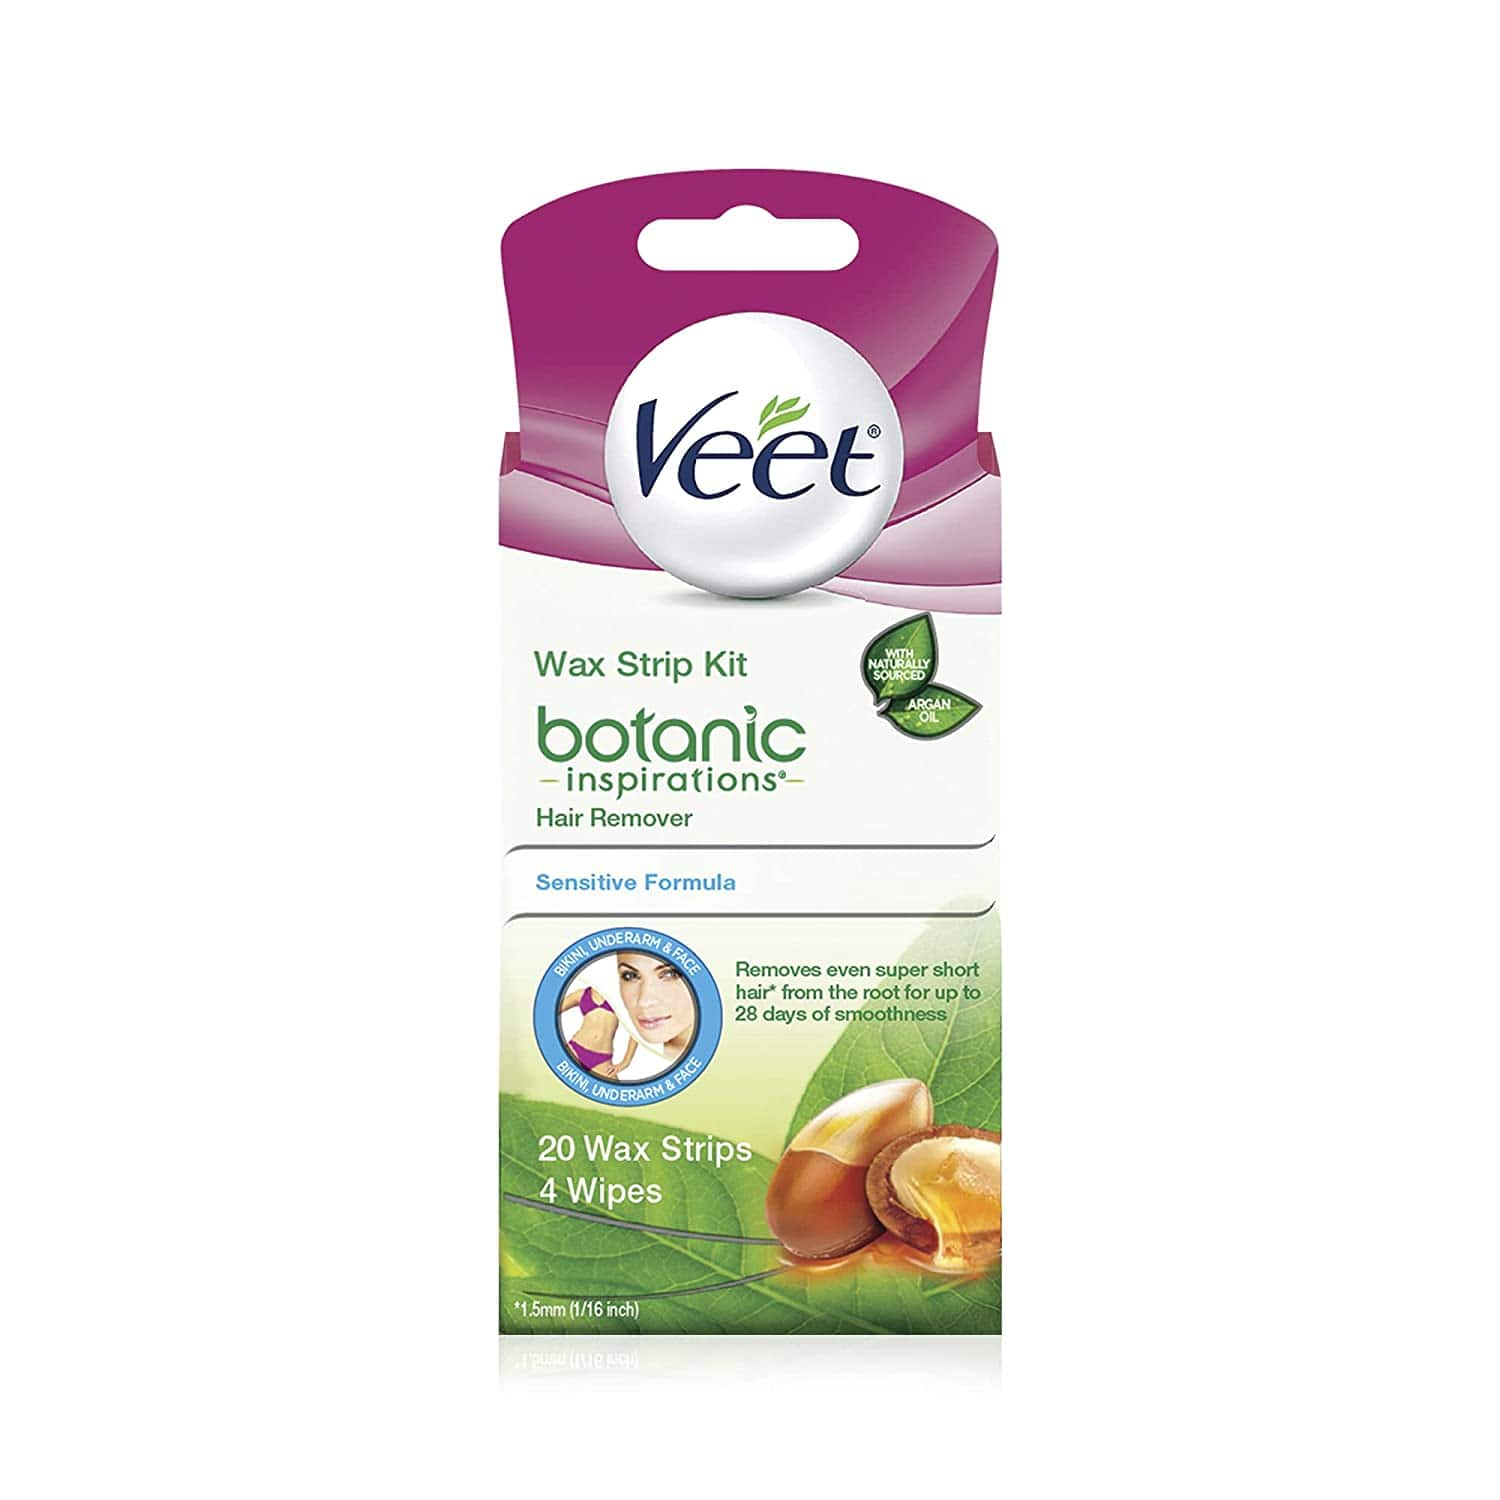 20 Ct. Veet Body, Bikini and Face Hair Remover Wax Kit $4.90 & More